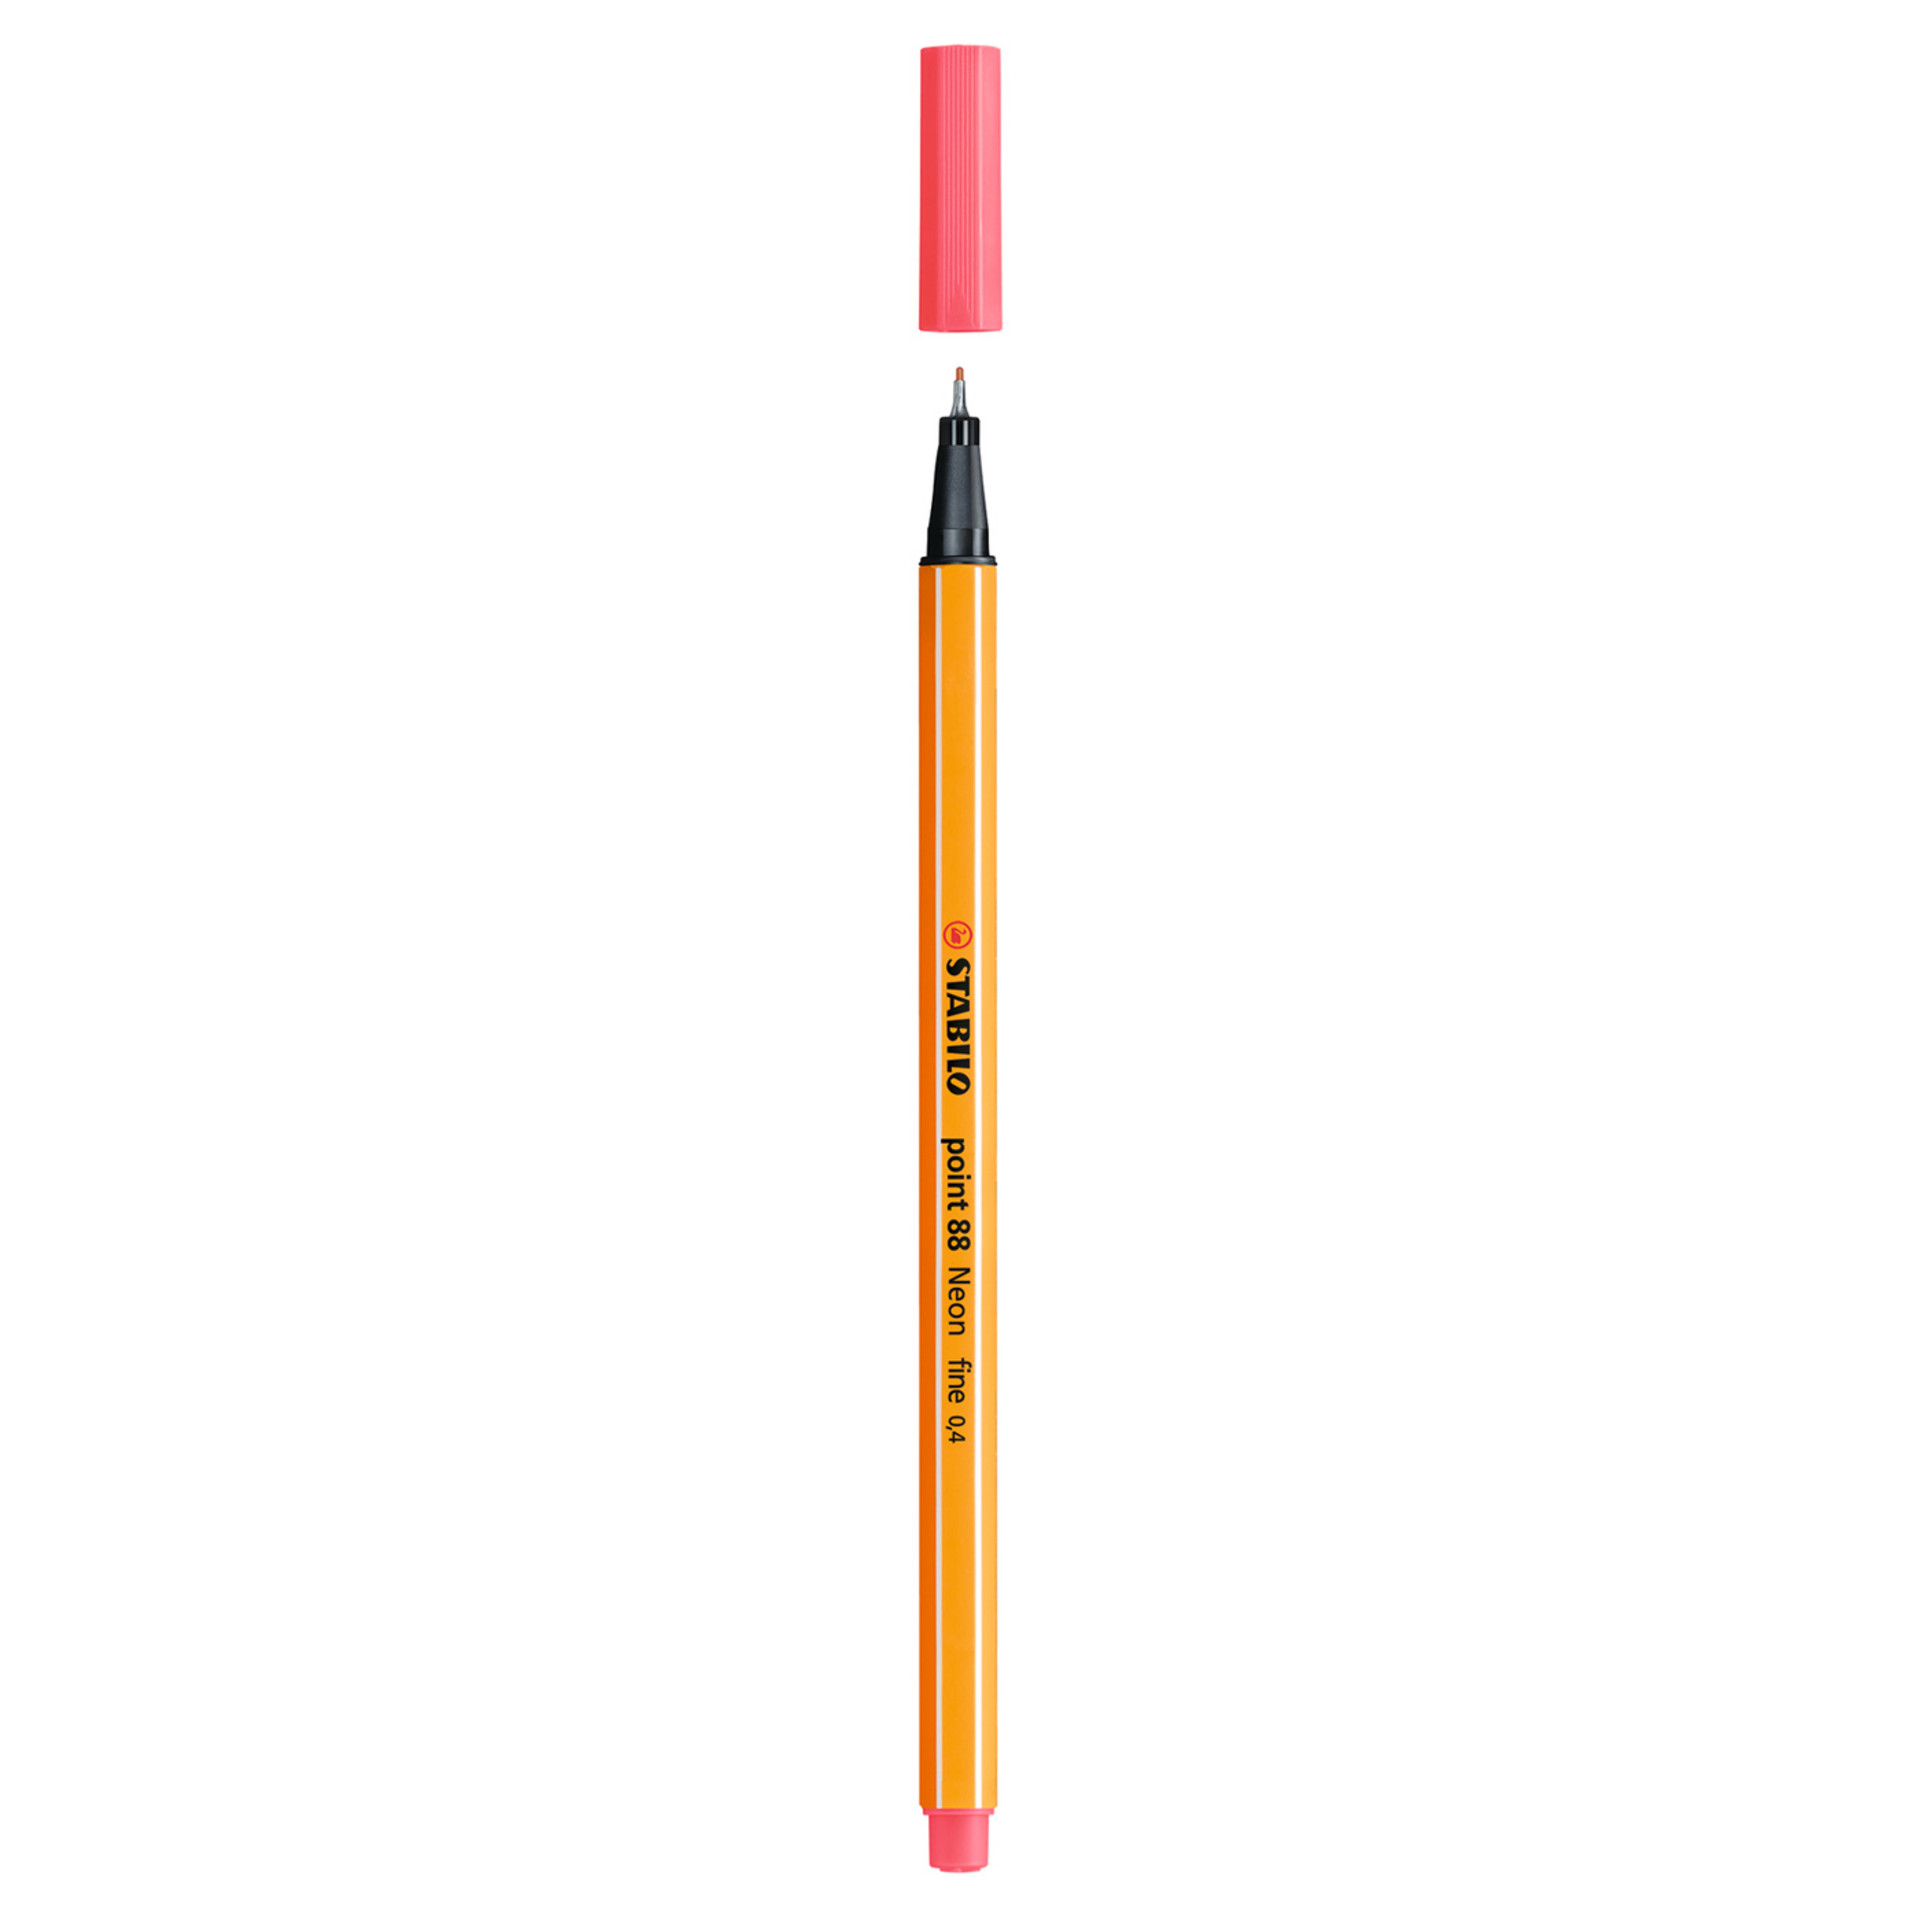 Stabilo Point 88 .4mm Fineliner Pen – Neon Red